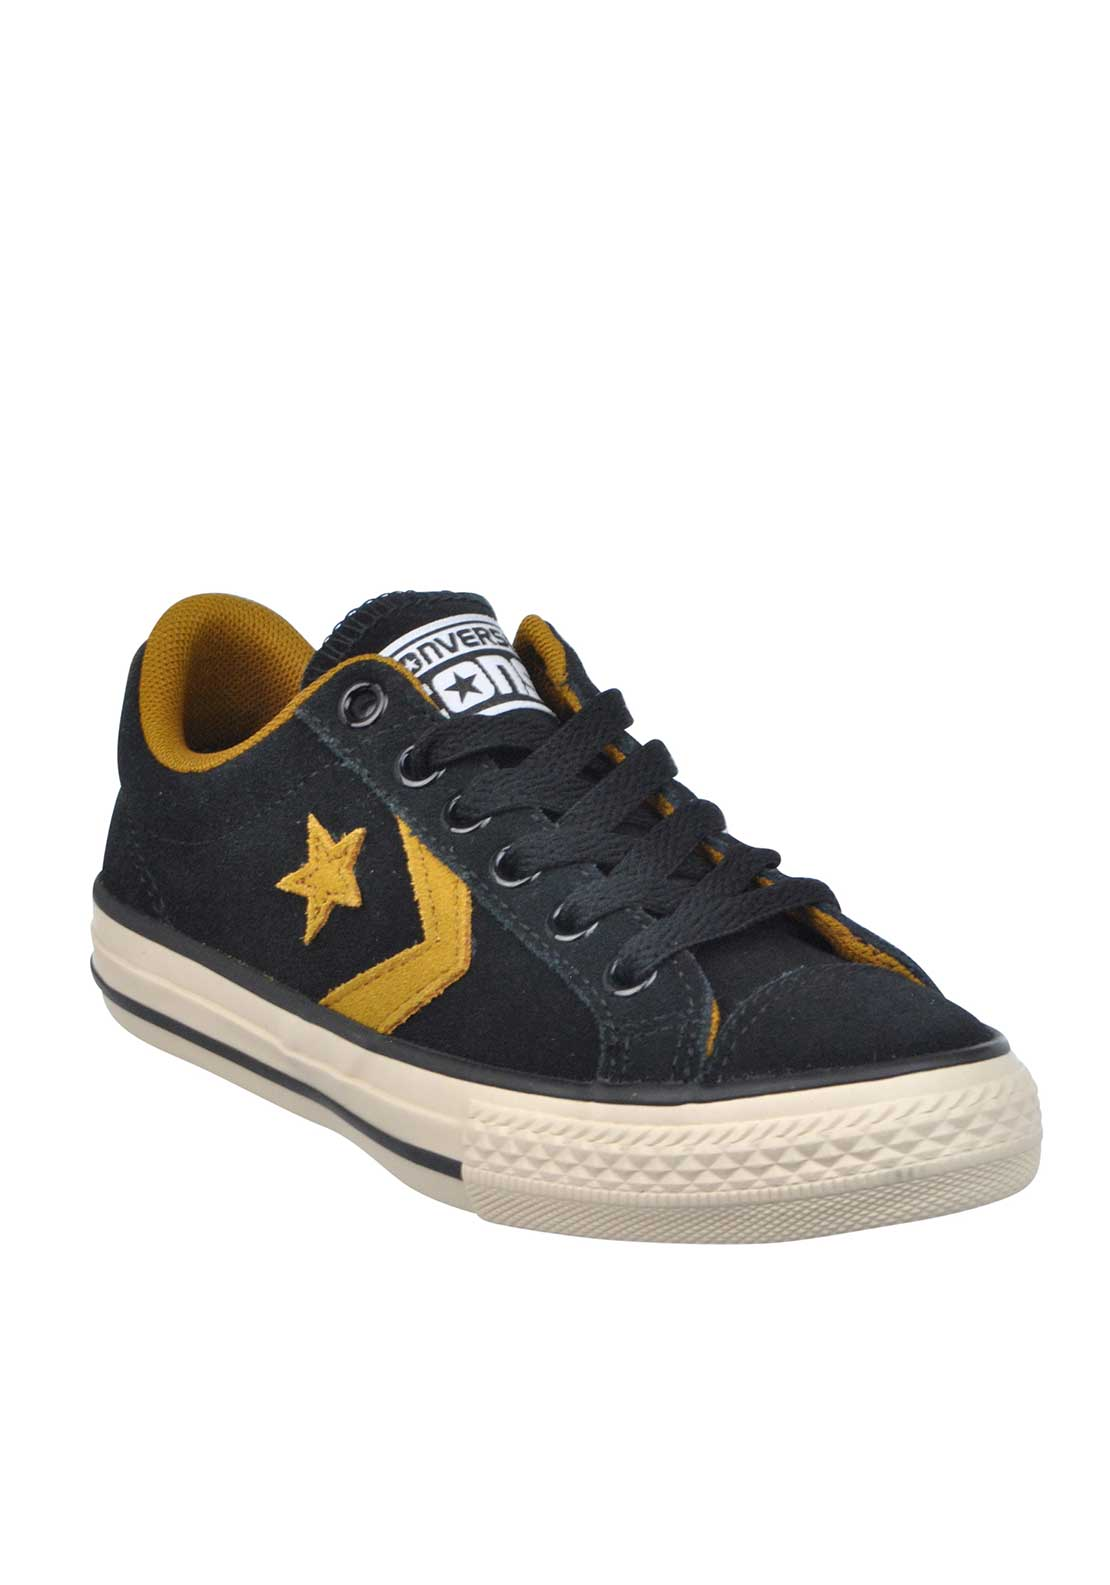 Converse Kids Cons Star Player Suede Trainers, Black